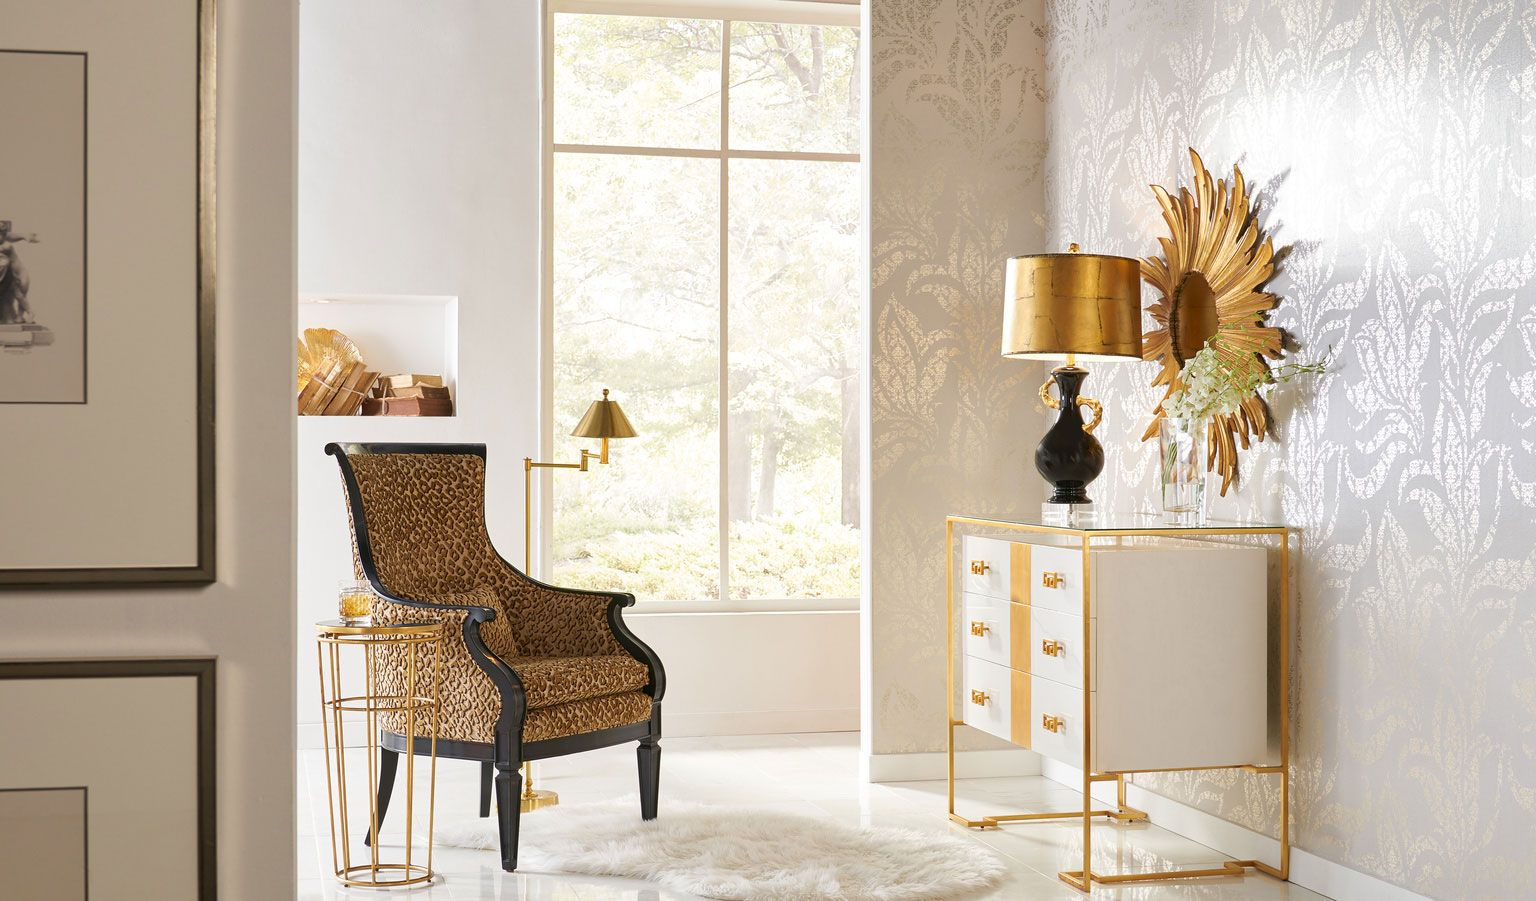 Lavish Interior Setting Featuring Elegant Furniture And Lighting With Gold  Accents; Home Lighting Ideas; Interior Design Inspiration;gold And Golden